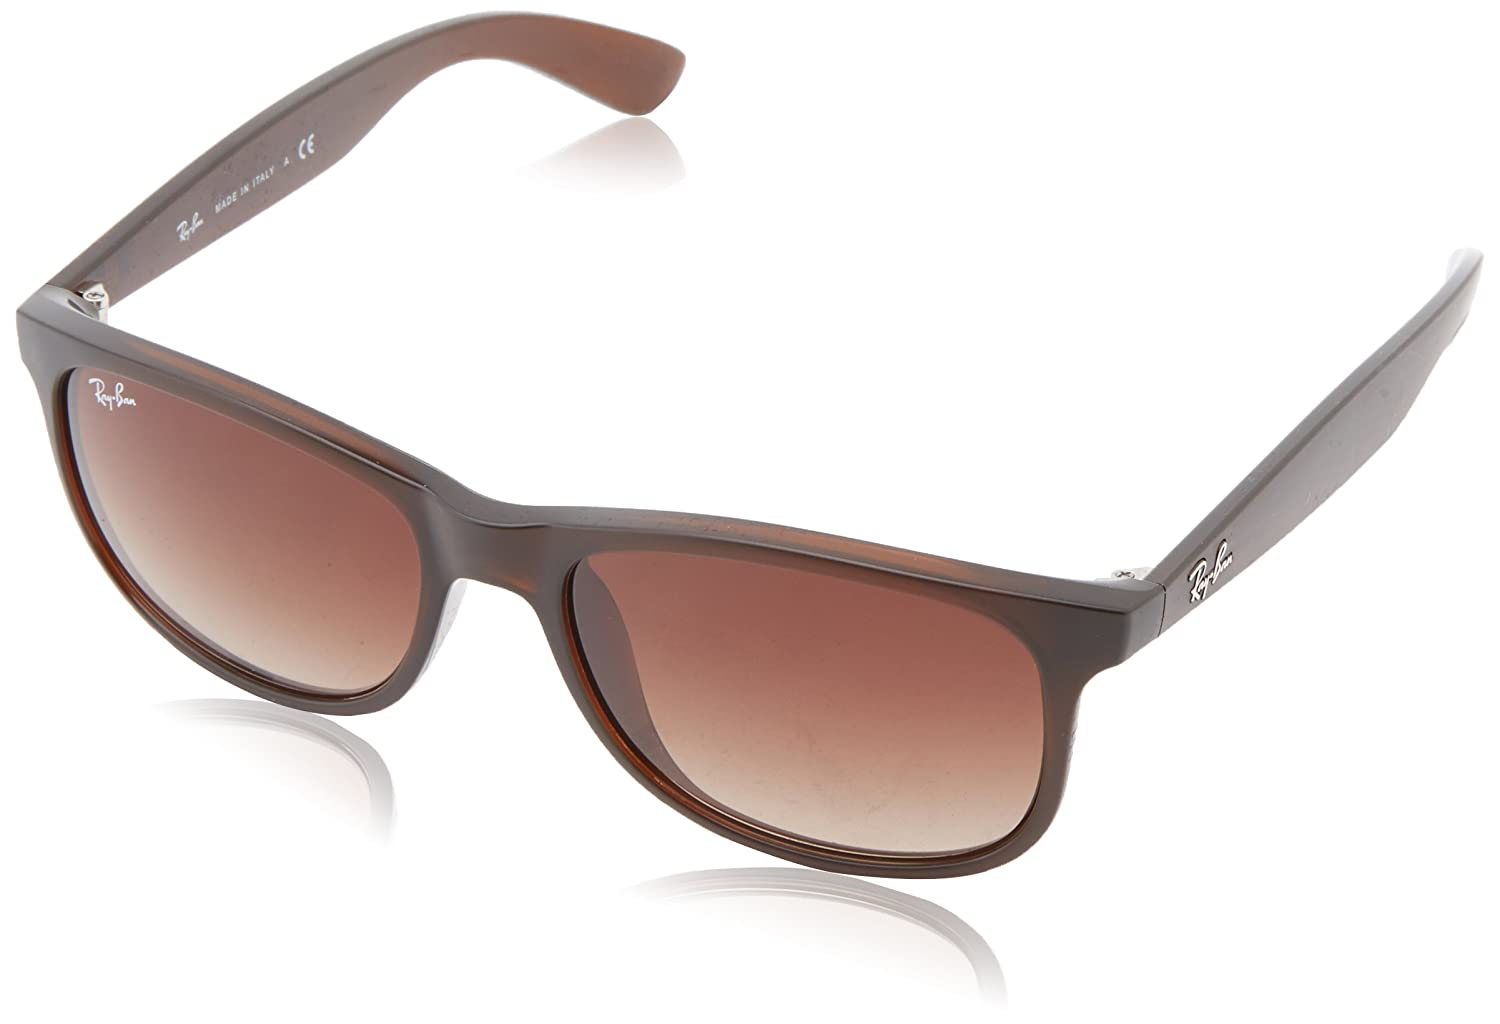 Ray-Ban RB4202 Andy Rectangular Sunglasses, Matte Brown/Brown Gradient, 55 mm